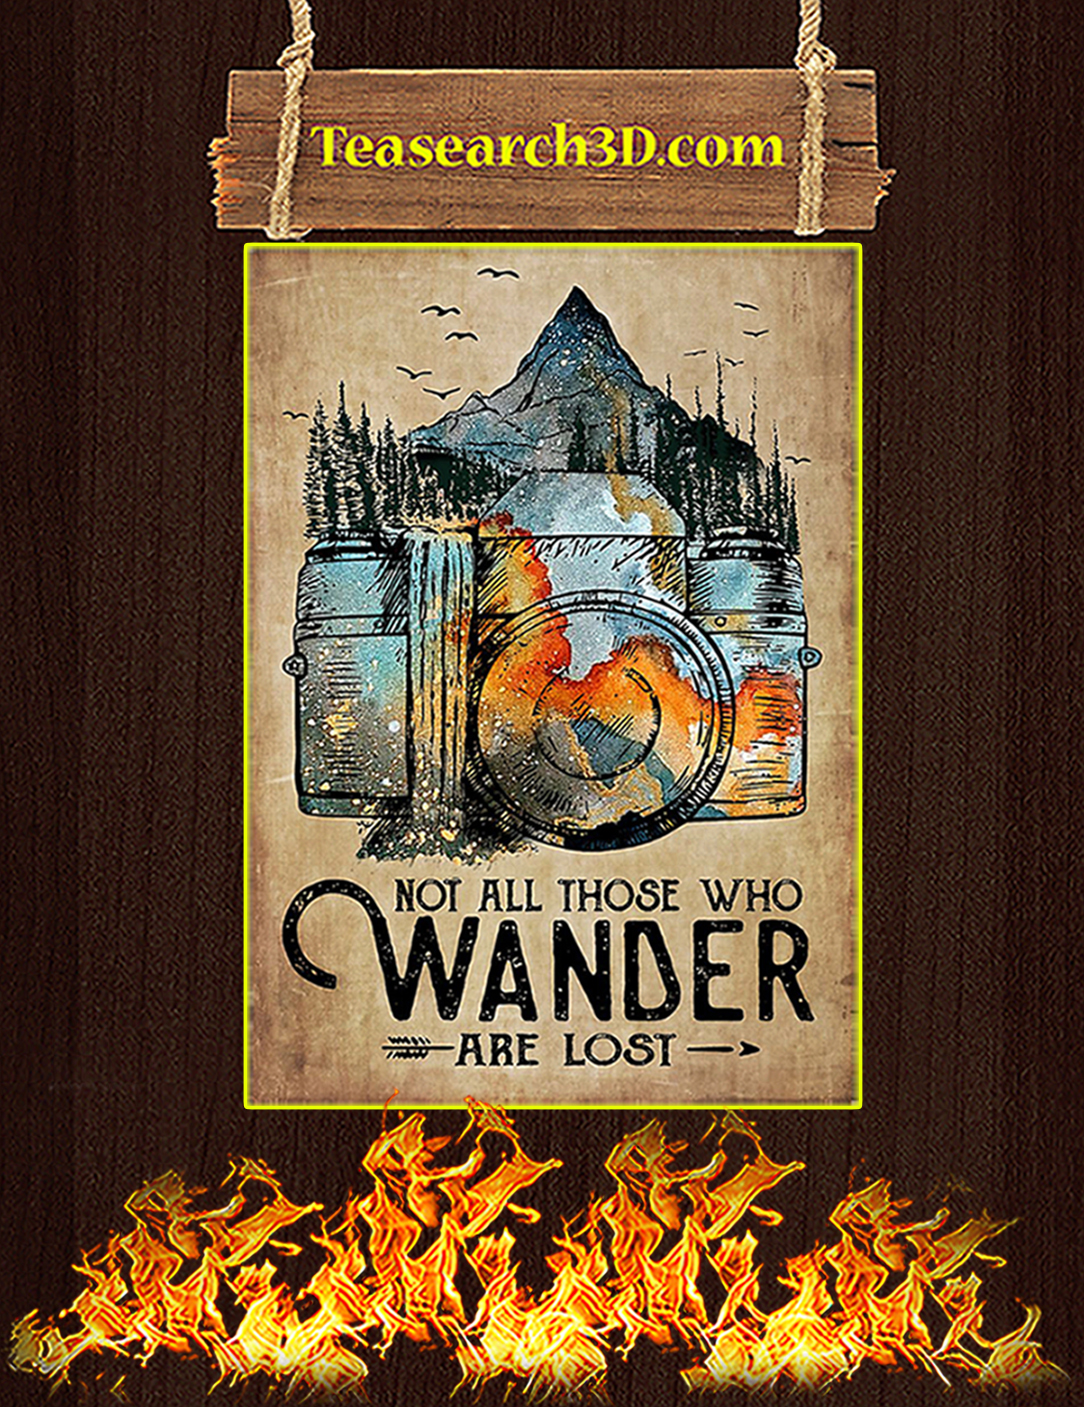 Photographer not all those who wander are lost poster A2